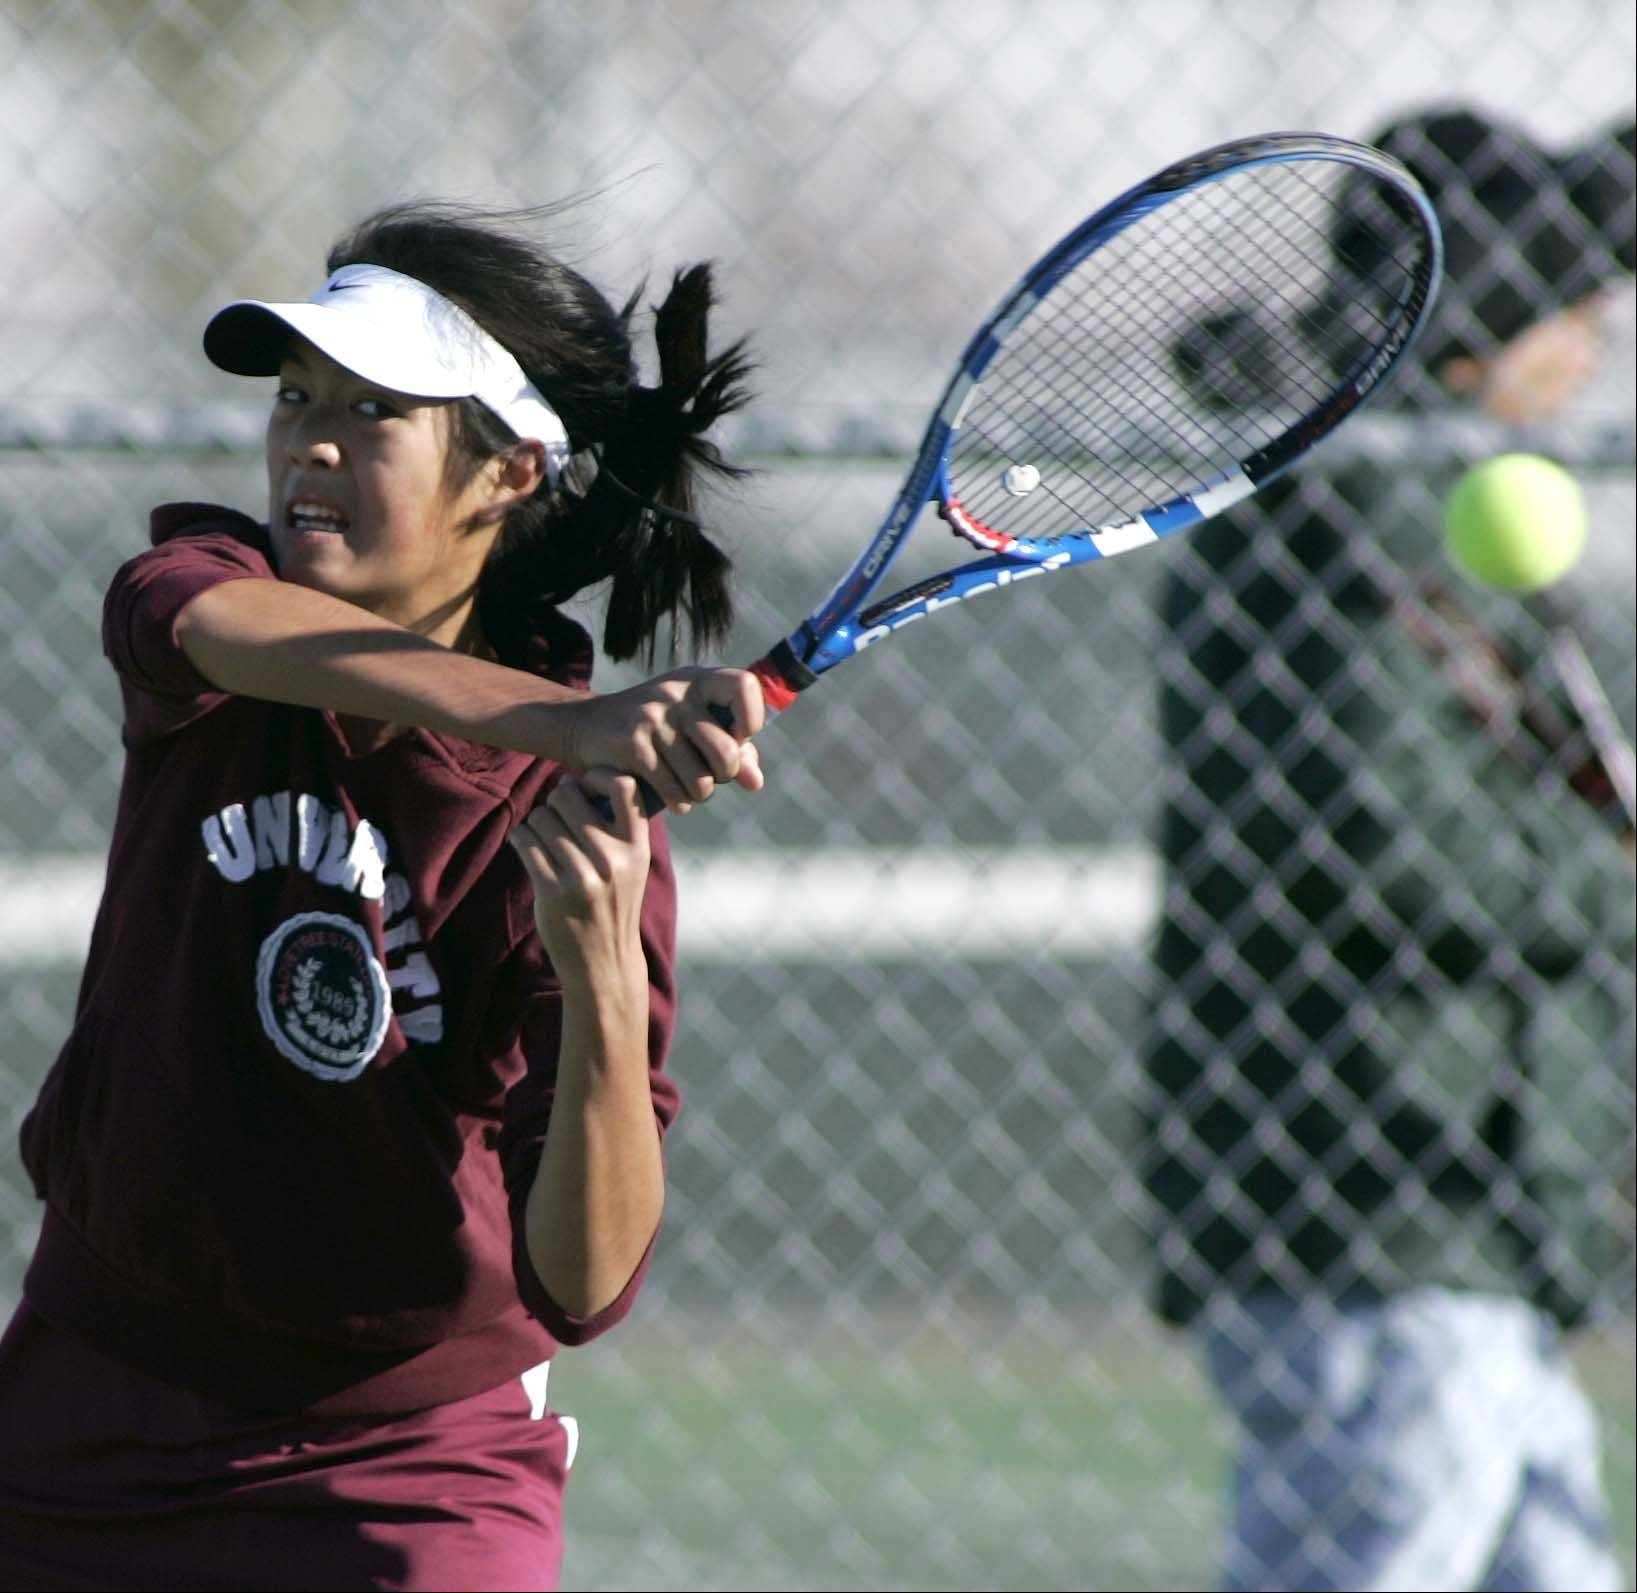 Elgin's Dahlia Keonavongsa competes during the Upstate Eight Rive tennis meet Saturday at Elgin High School.